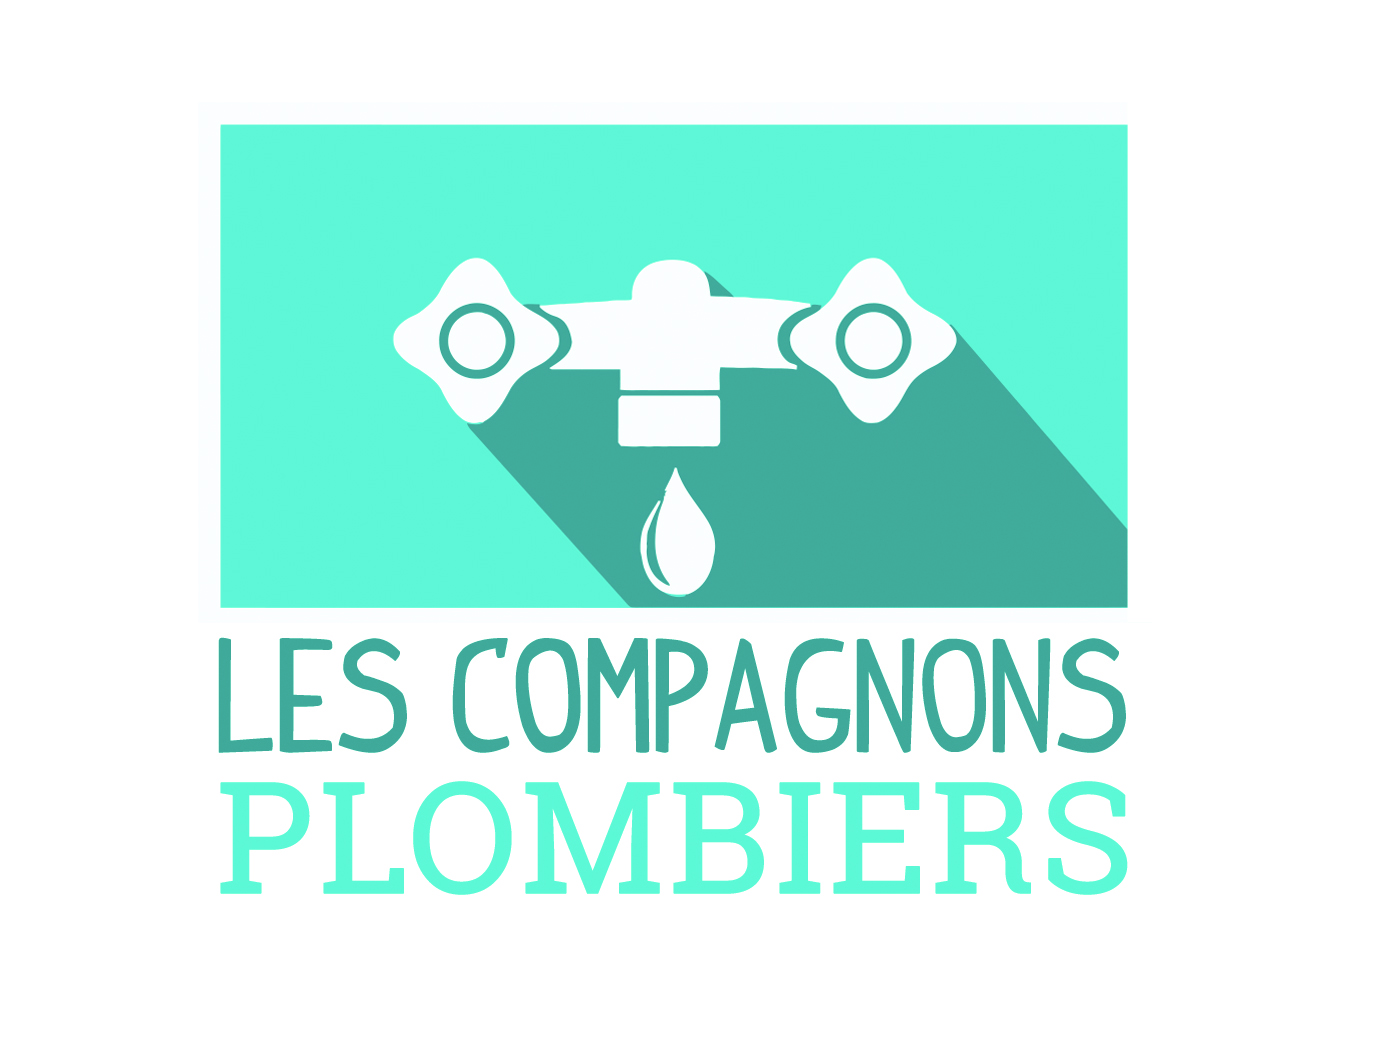 Les compagnons plombiers